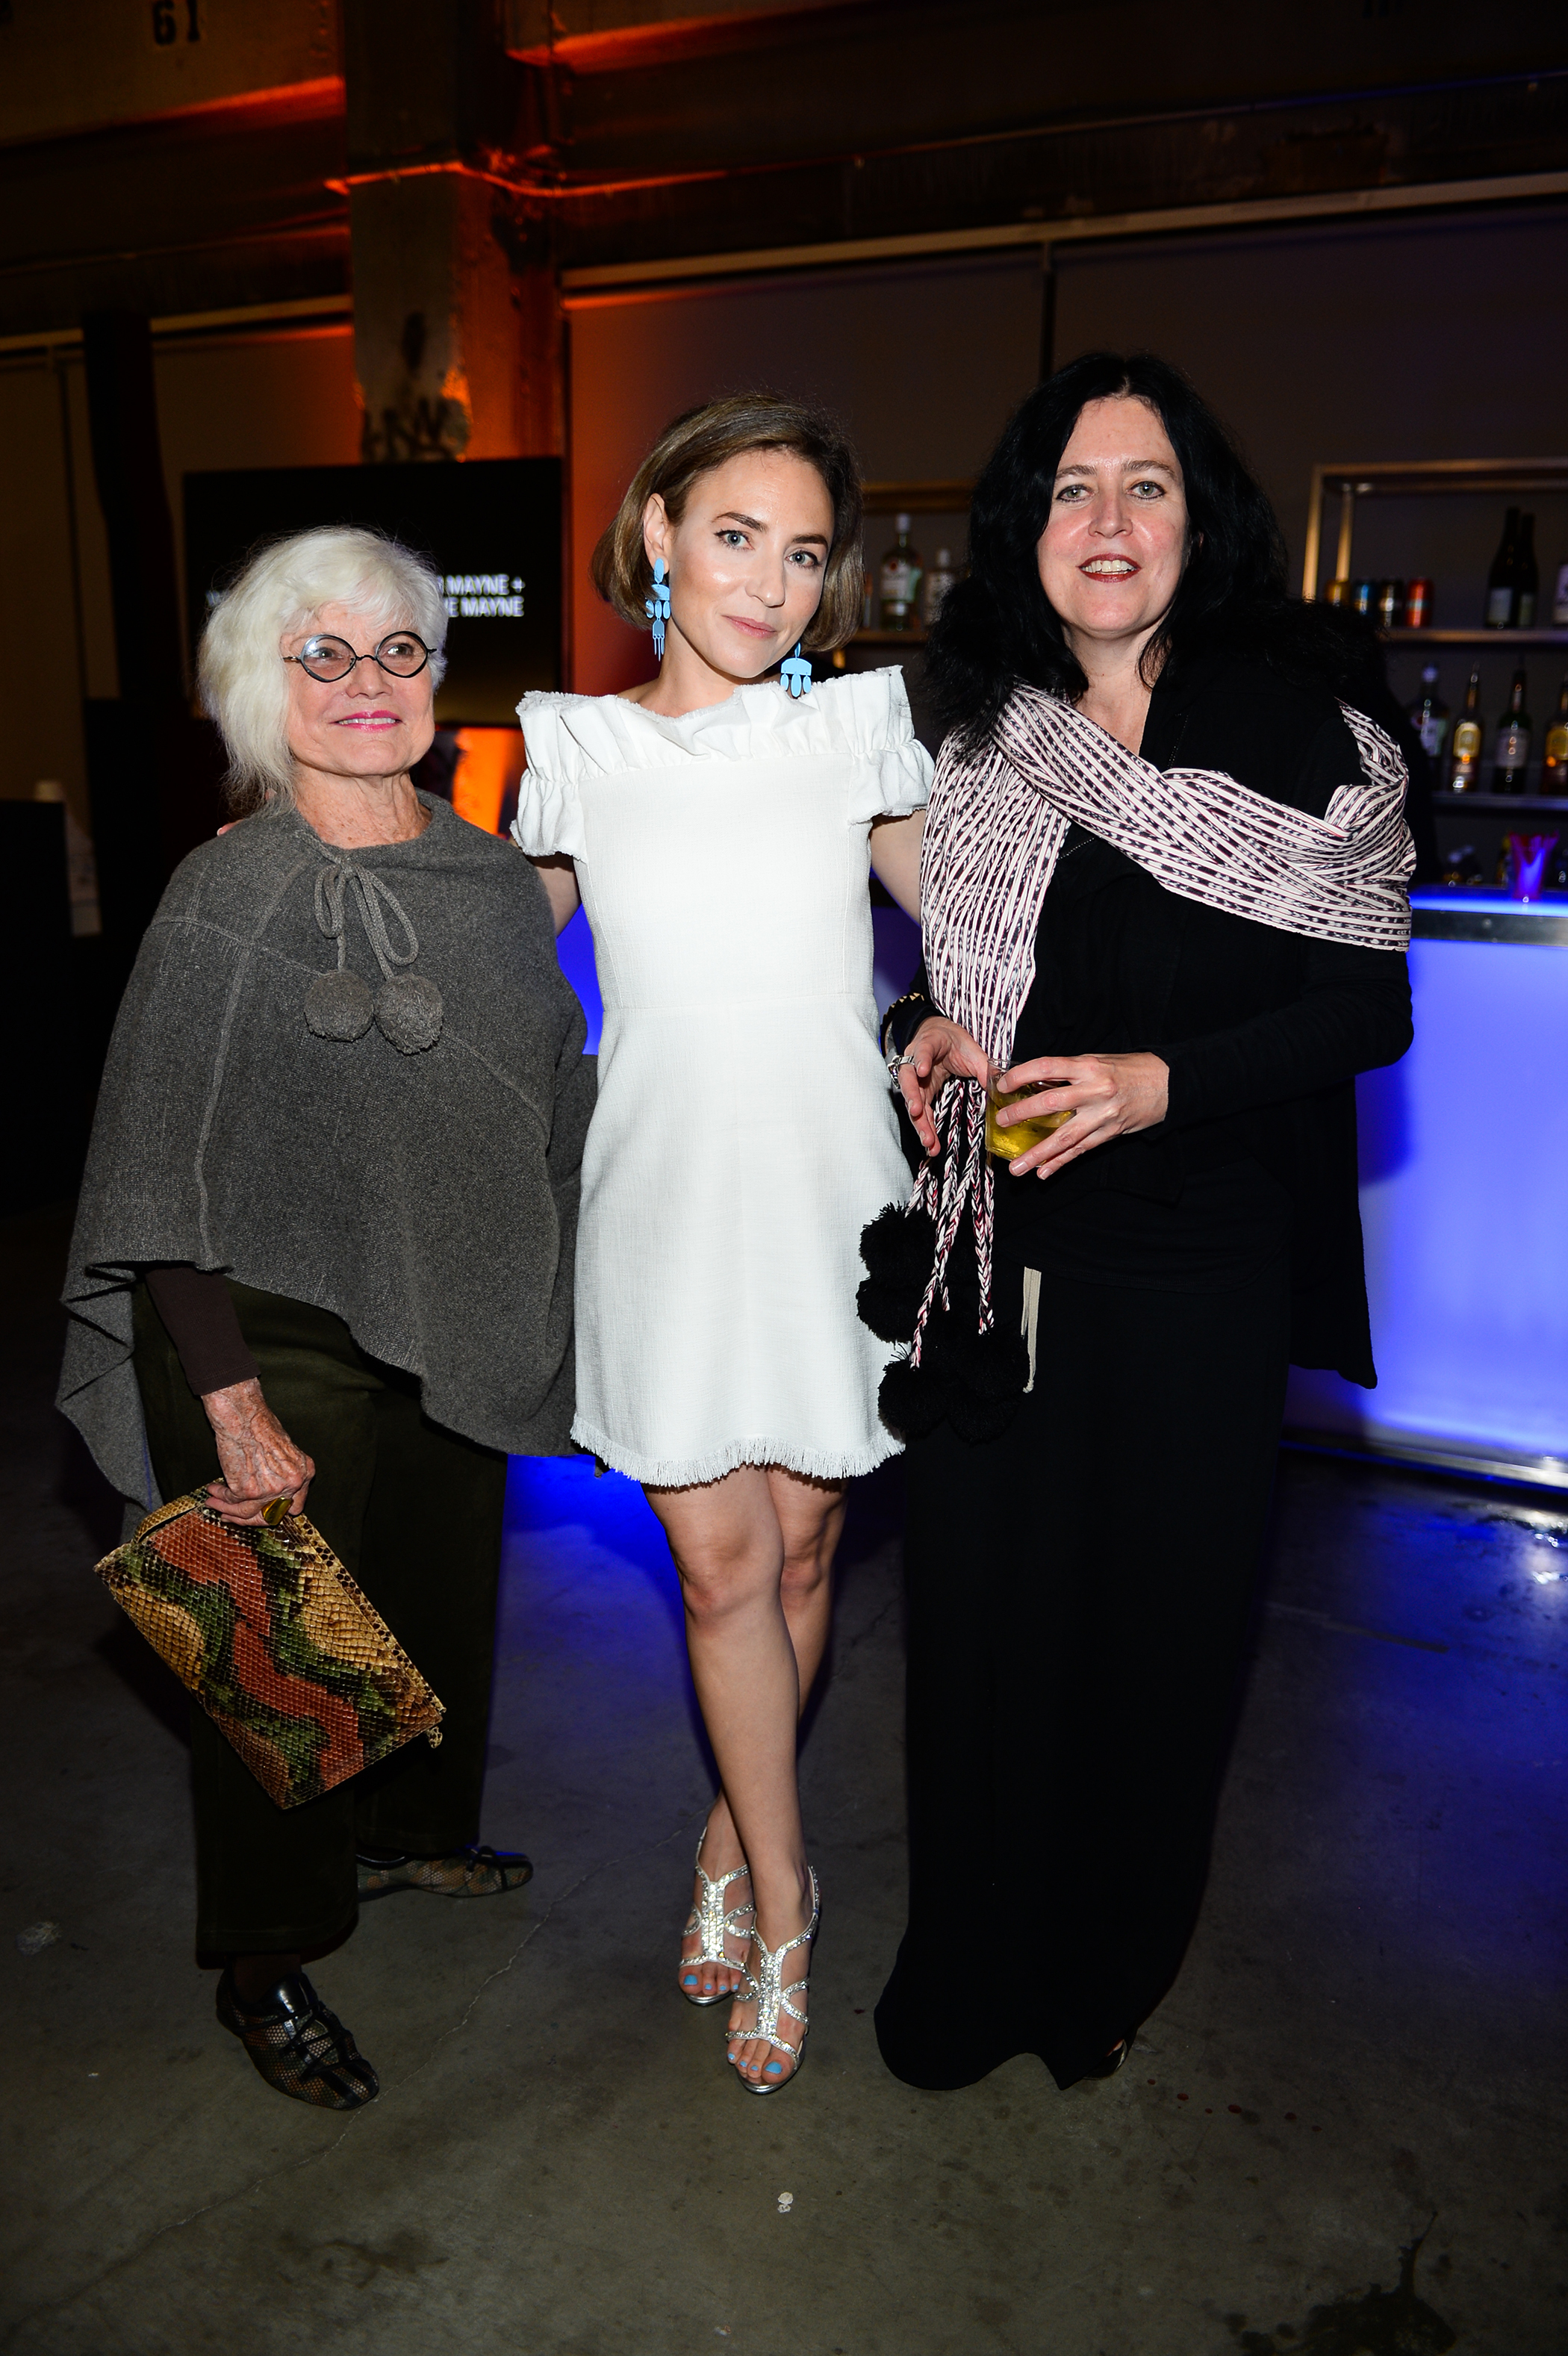 Three women stand and pose for a photo together.